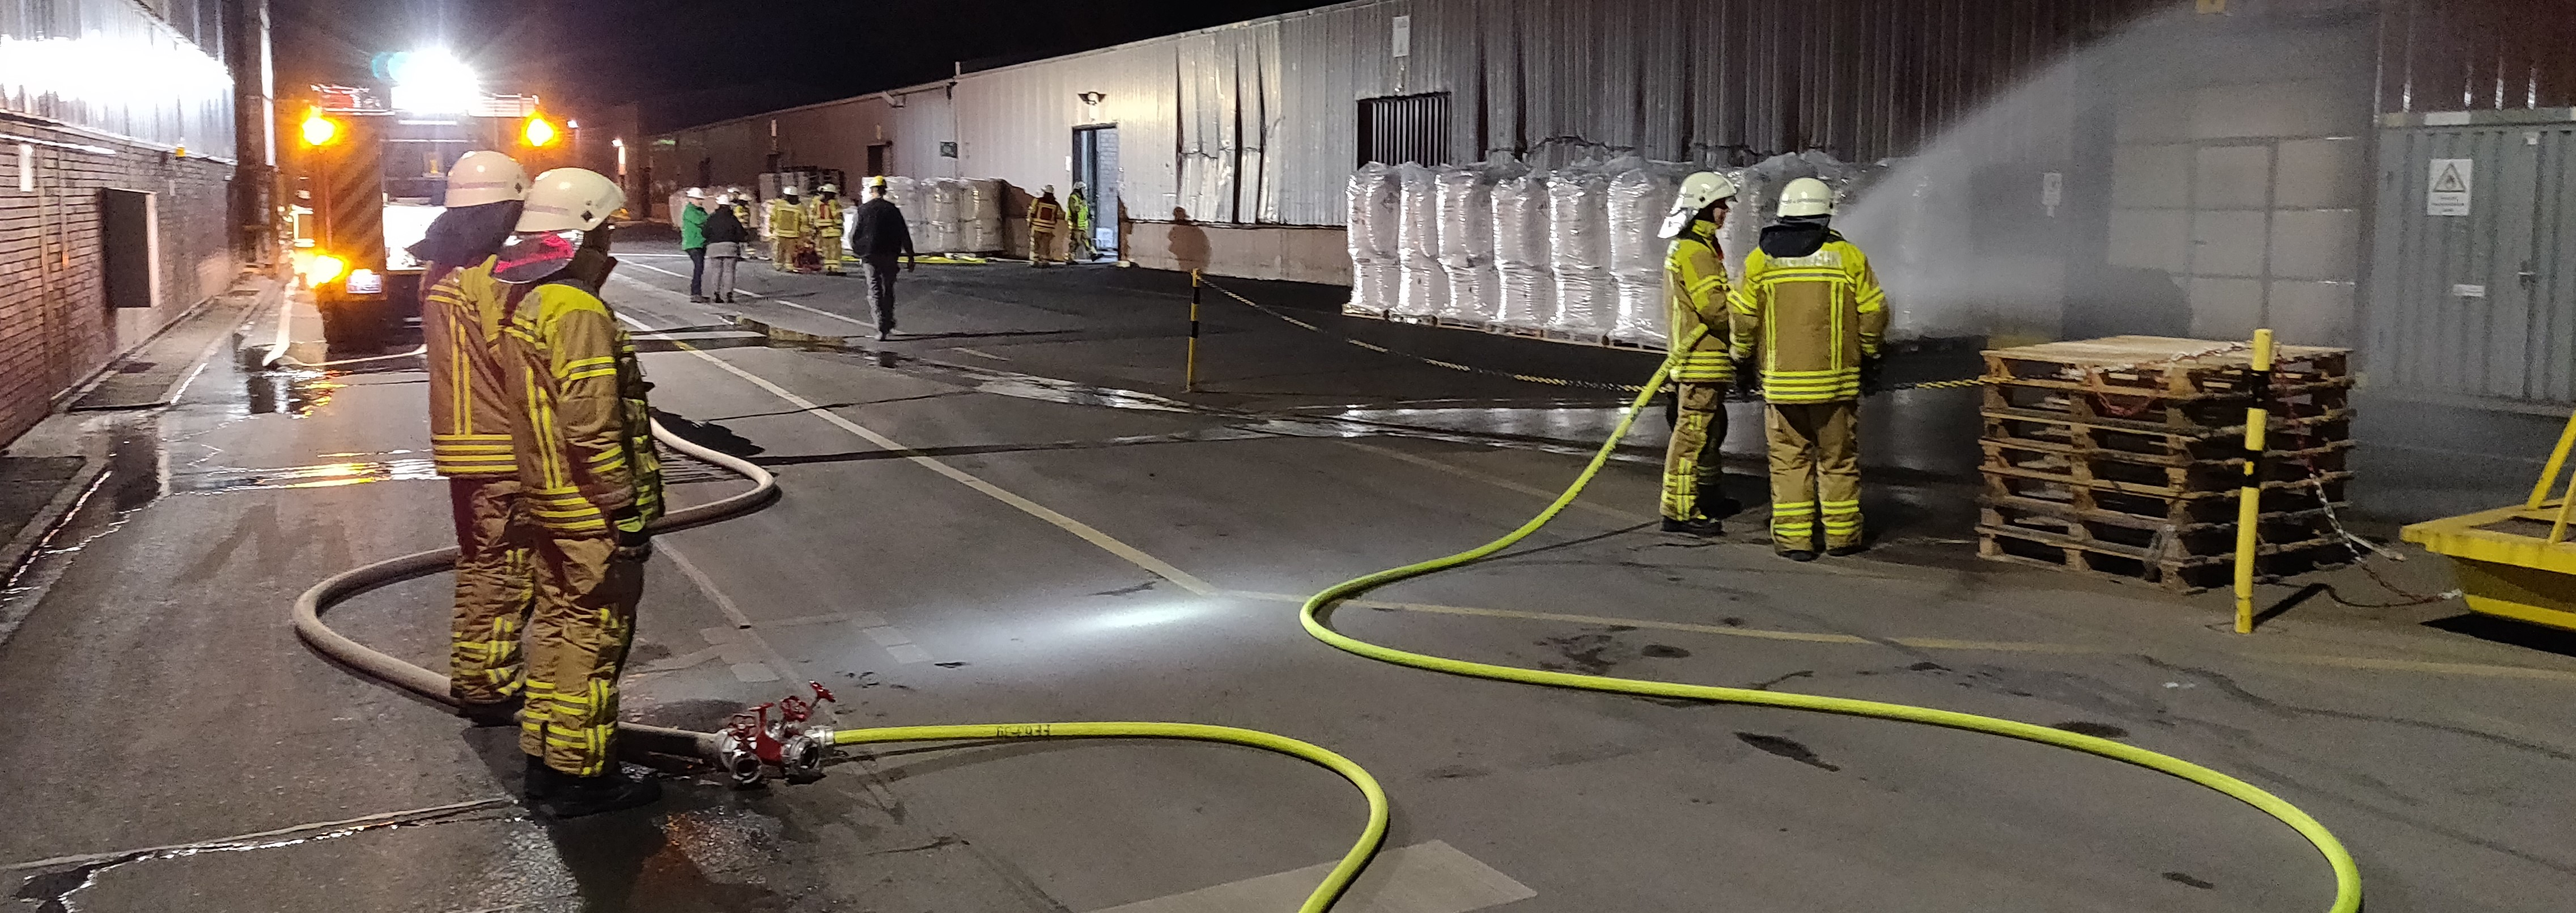 Incident simulation at the Norzinco site